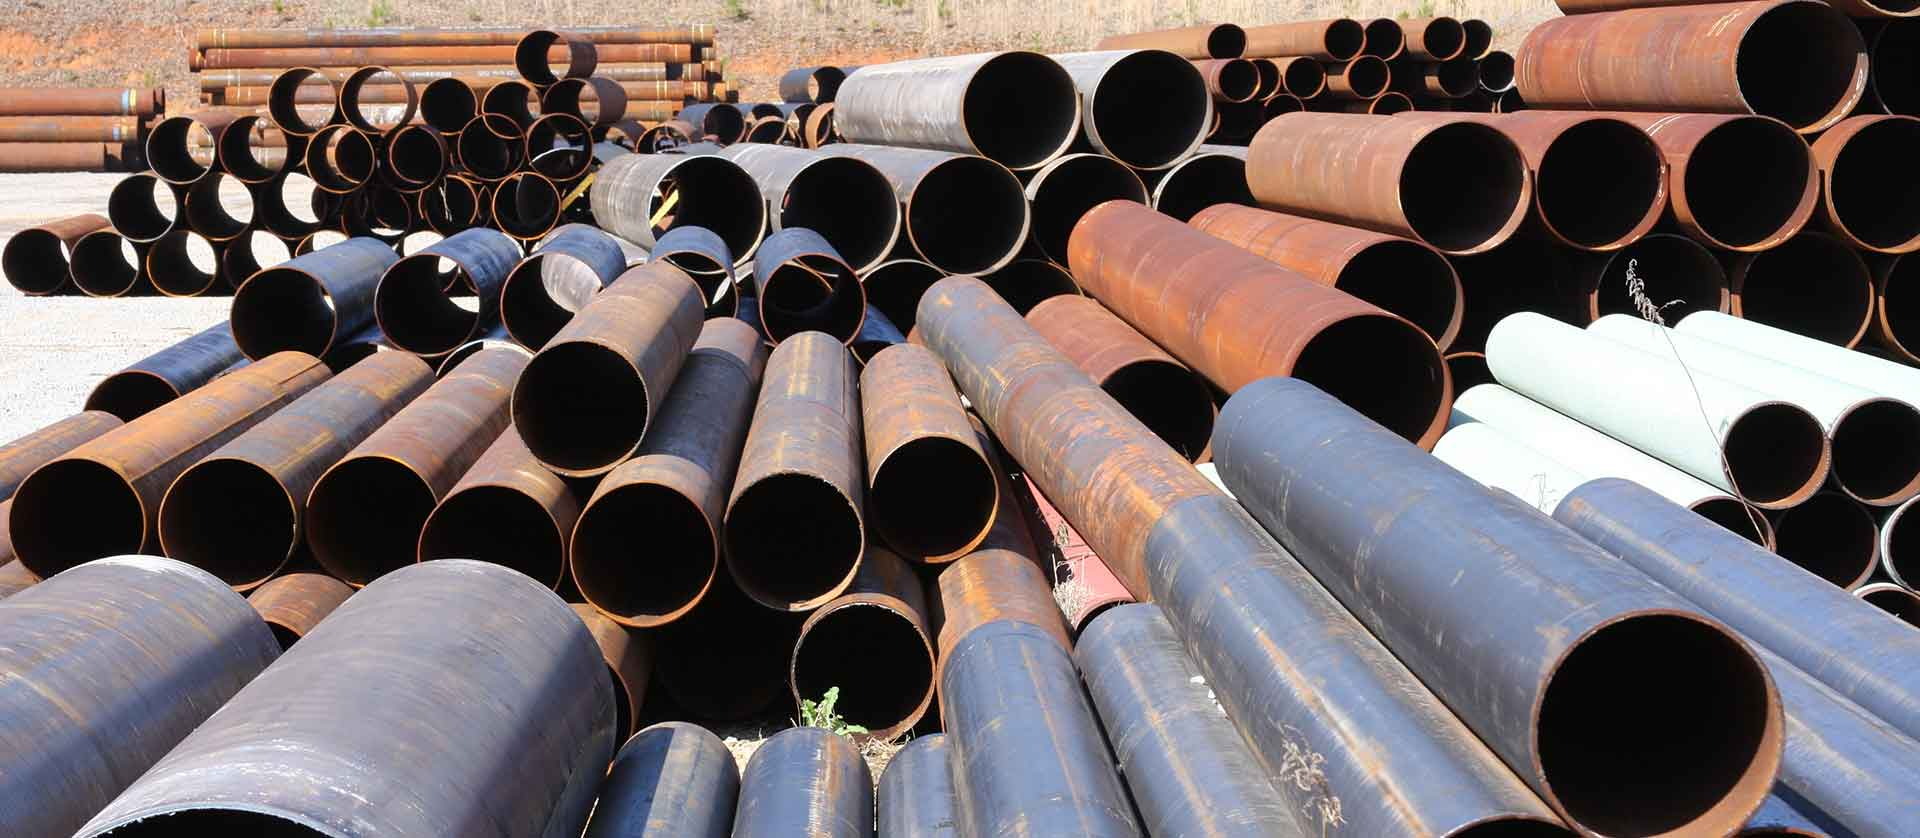 structrual steel pipe